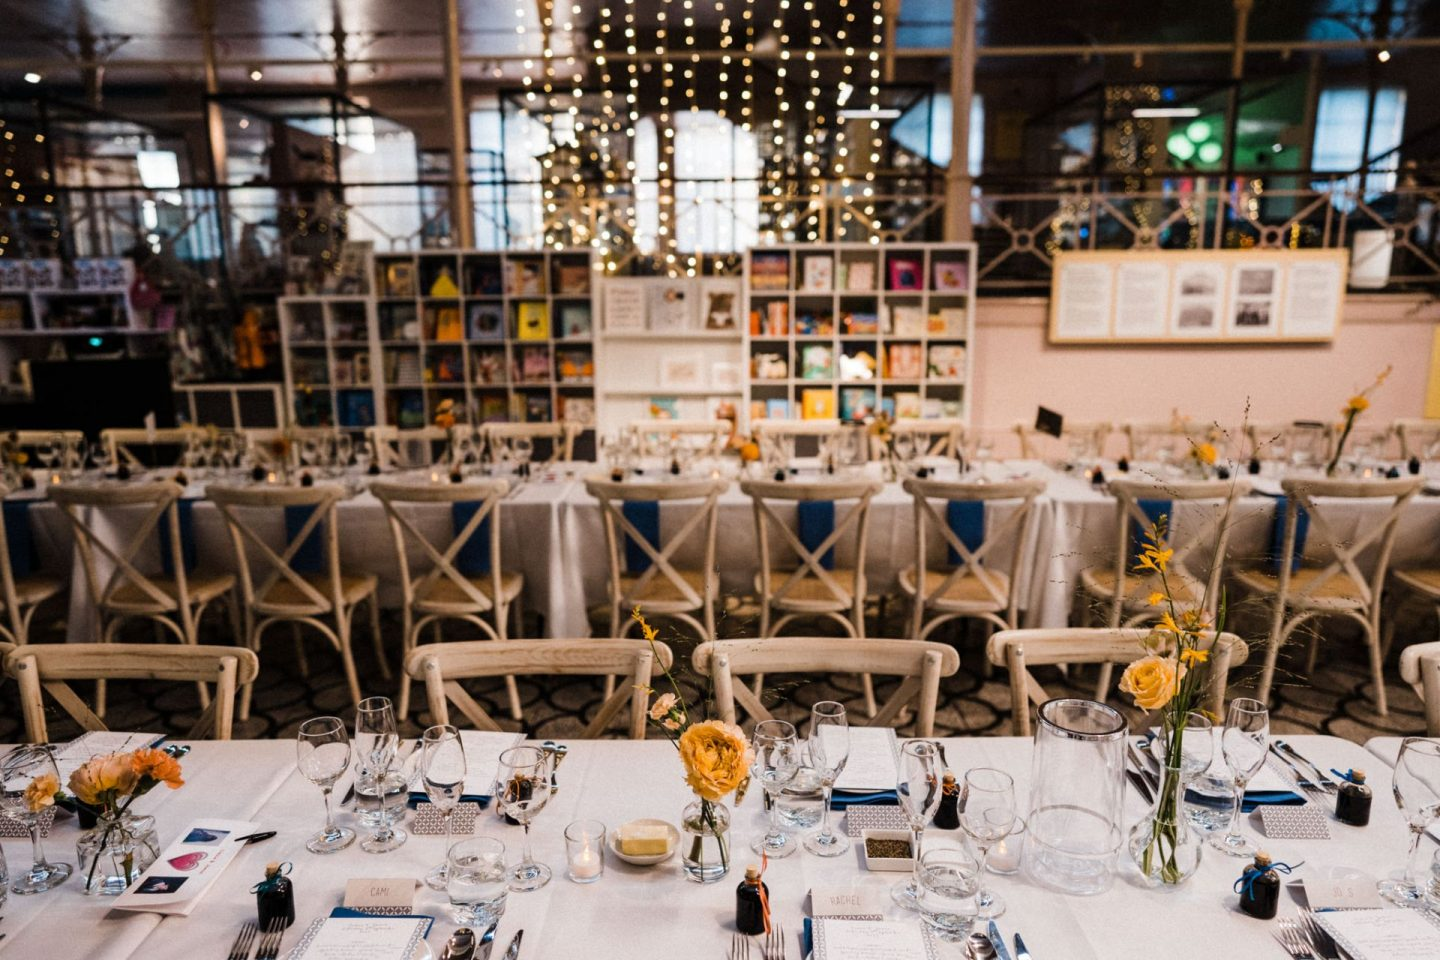 Table Plan Tips, wedding table plan advice, London Wedding Planner, Walthamstow Wedding Planner, On the Day Coordinator, Dry Hire Wedding, Trestle Tables, Museum of Childhood